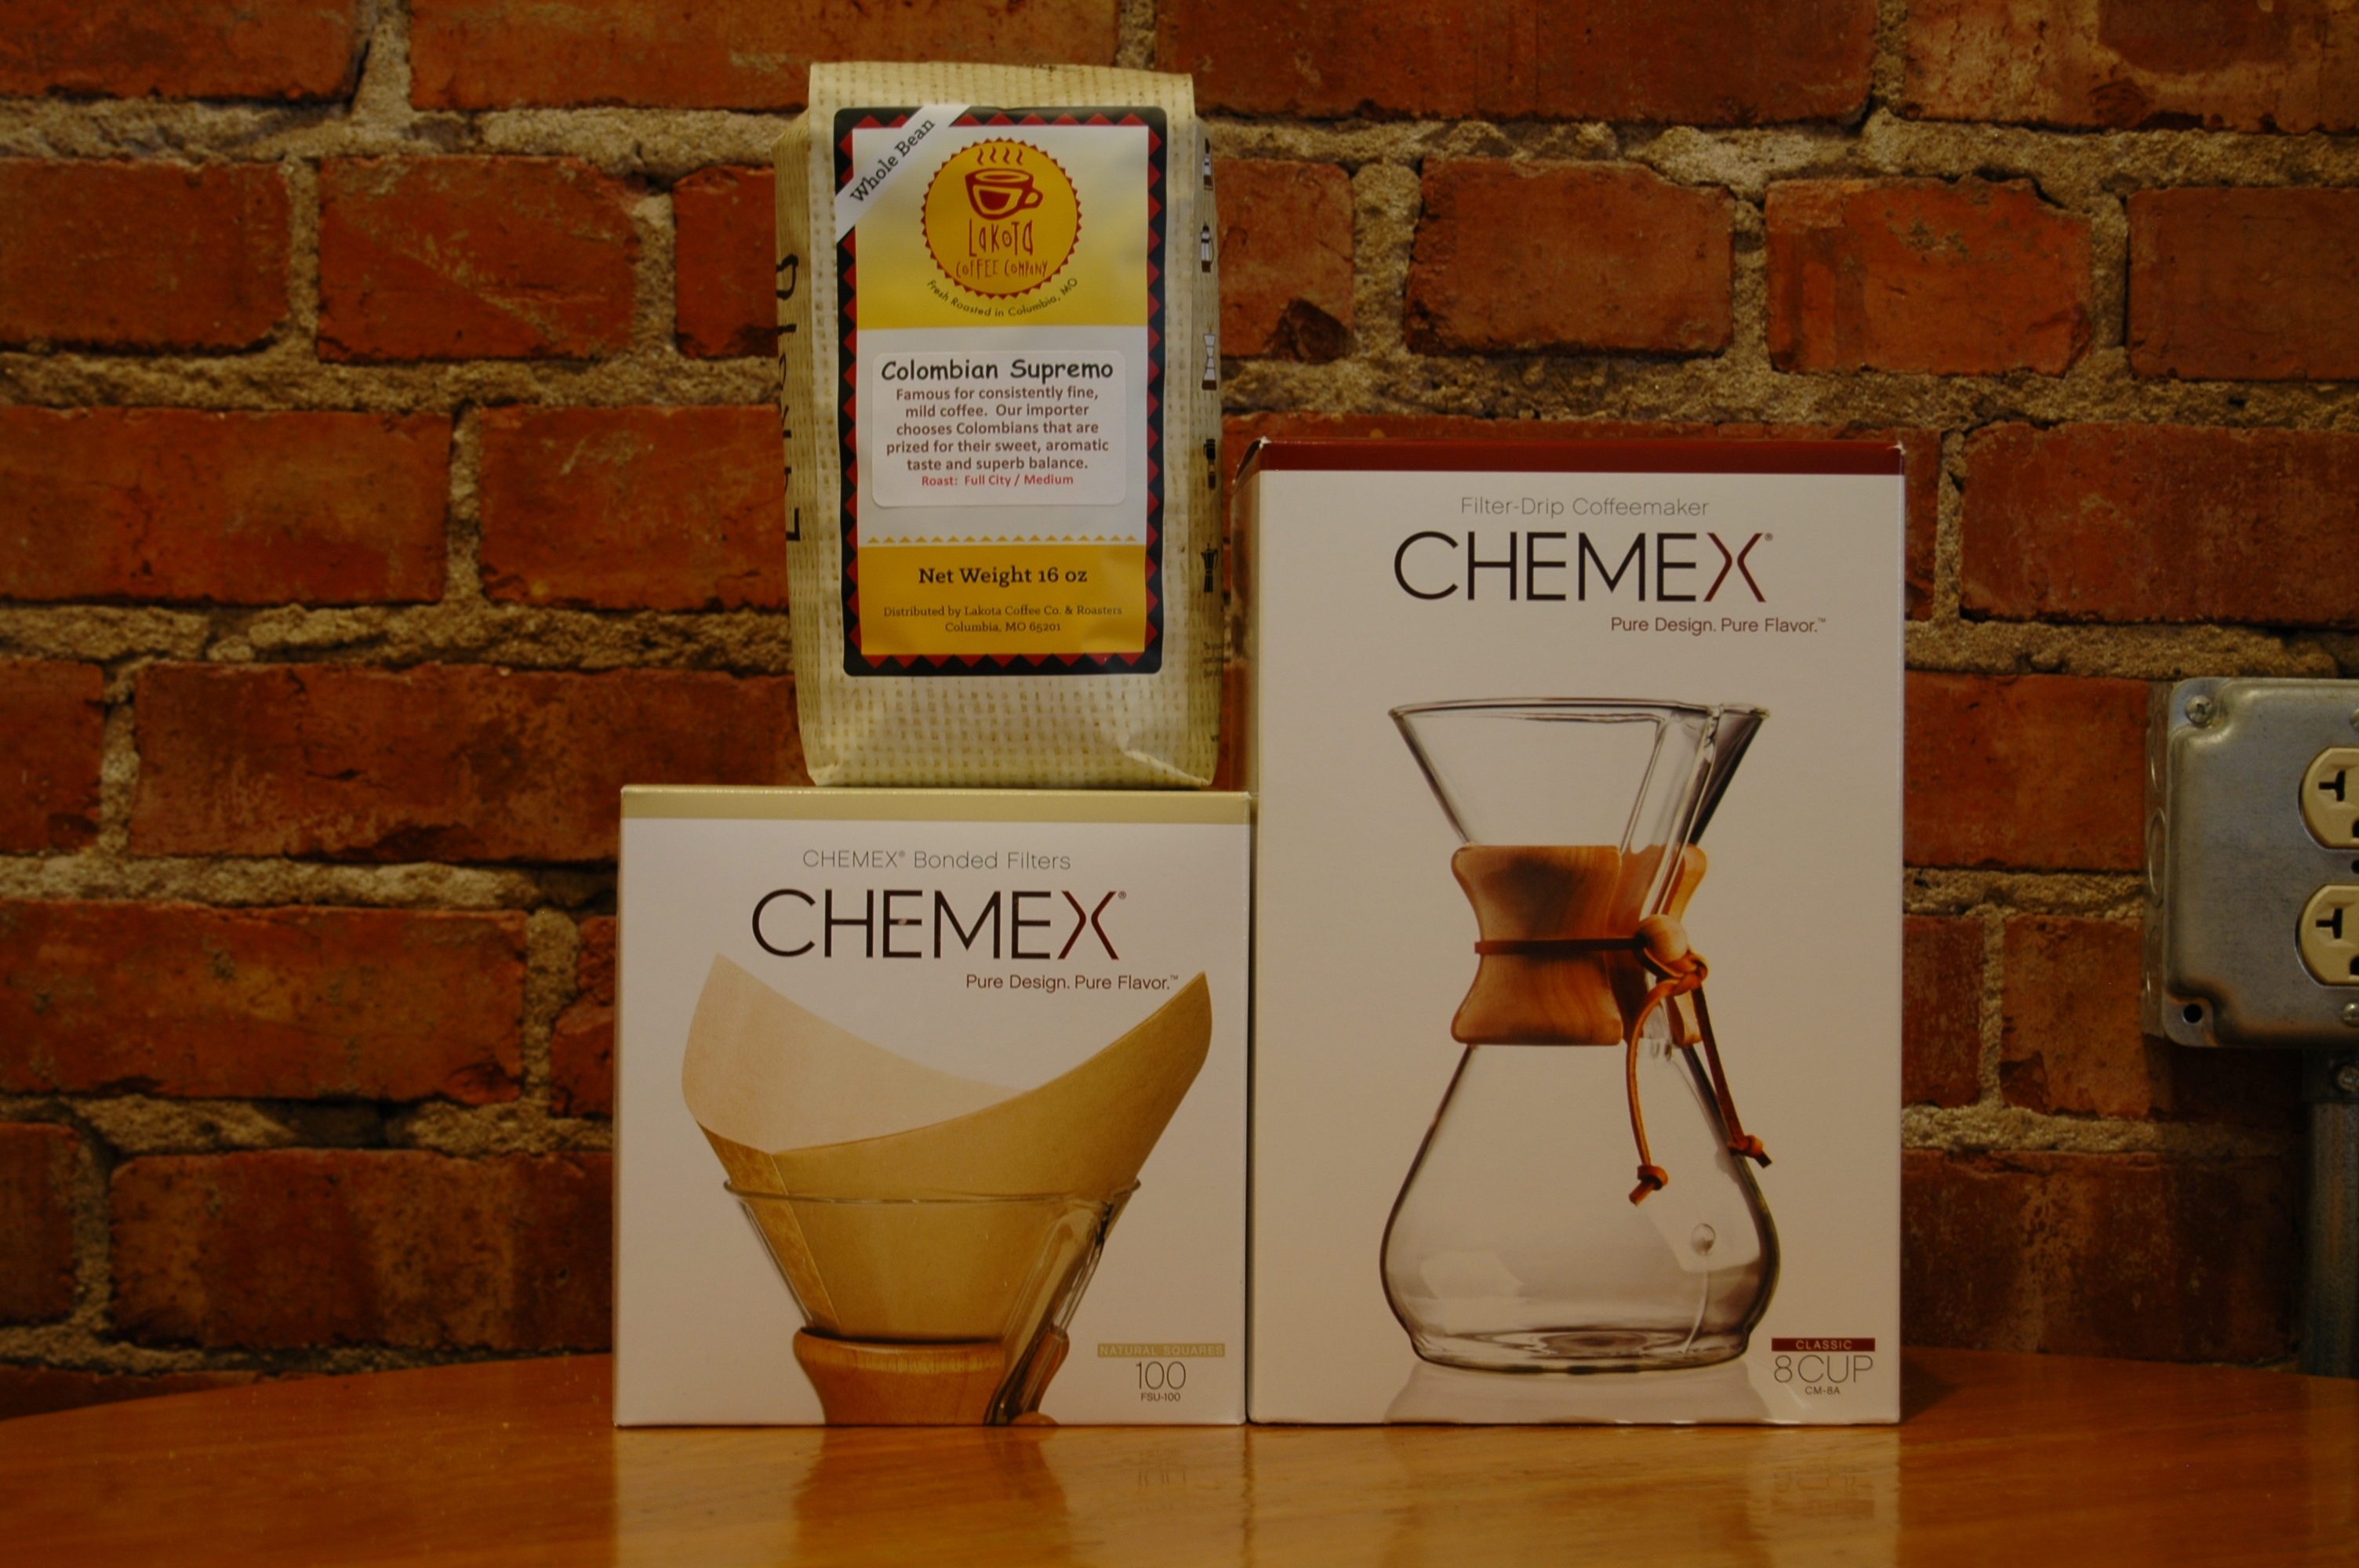 Chemex products including filter-drip coffeemaker and bonded filters alongside a bag of Lakota Coffee Company Columbia Supremo